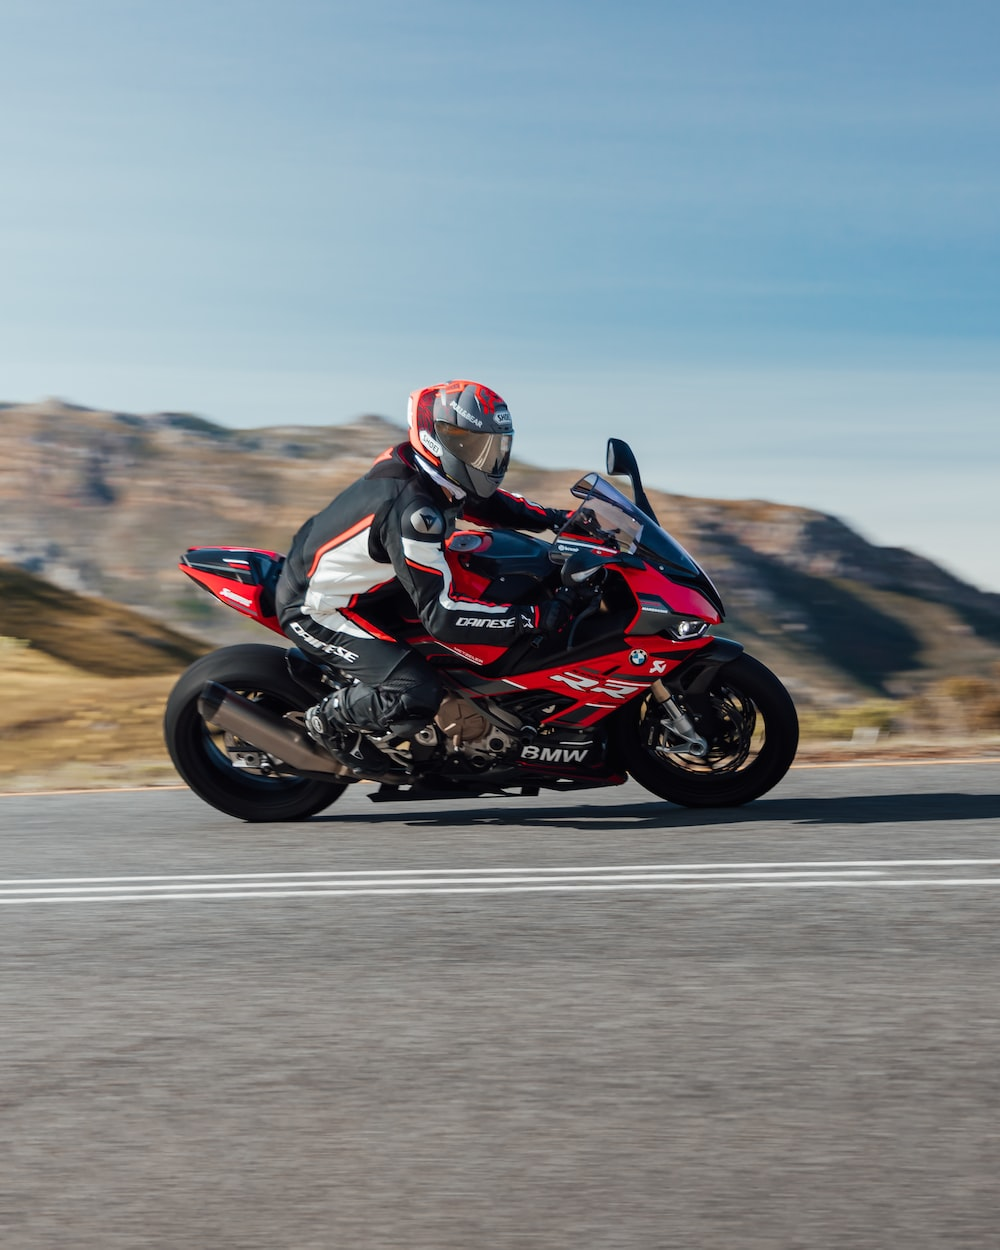 man in black and red motorcycle suit riding on black sports bike on gray asphalt road